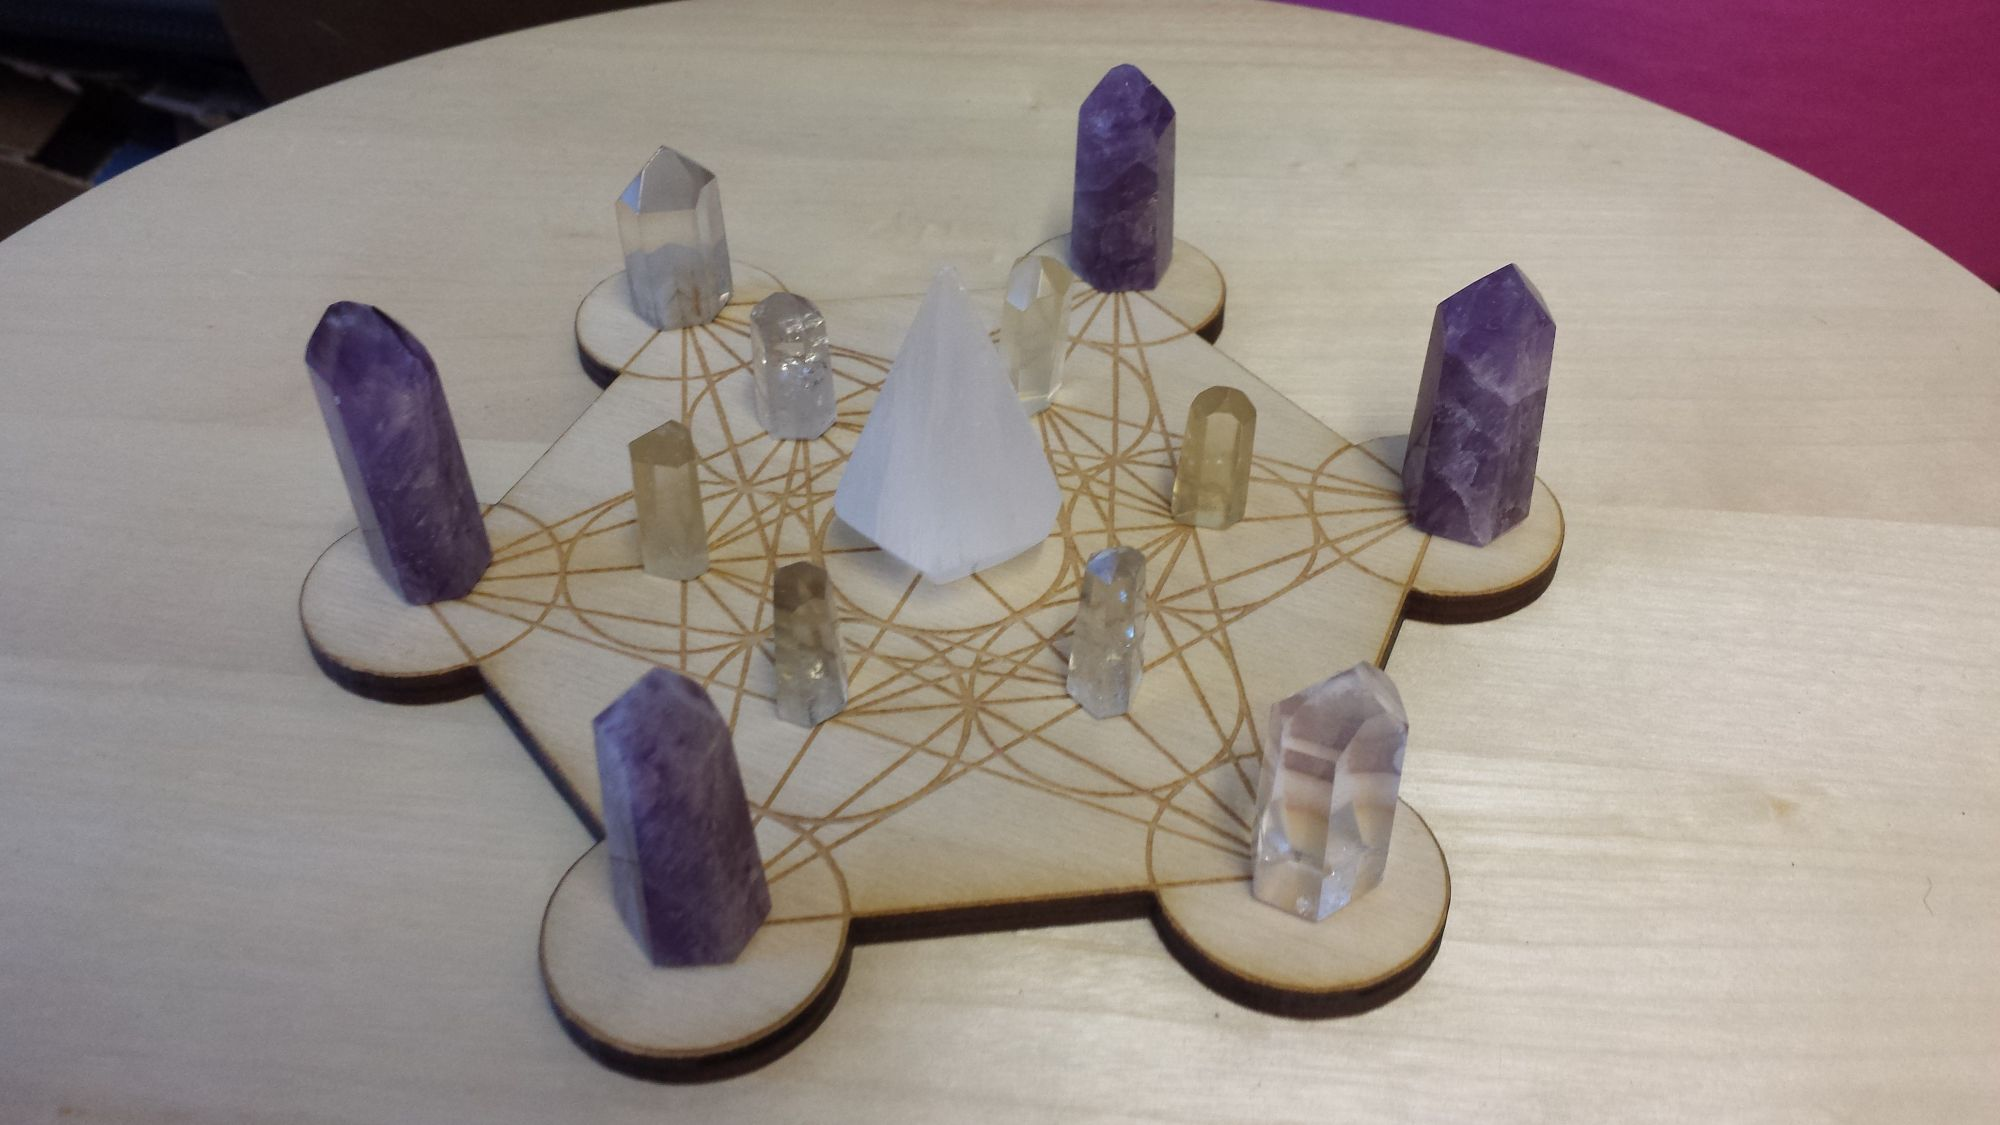 crystals on a flower of life grid